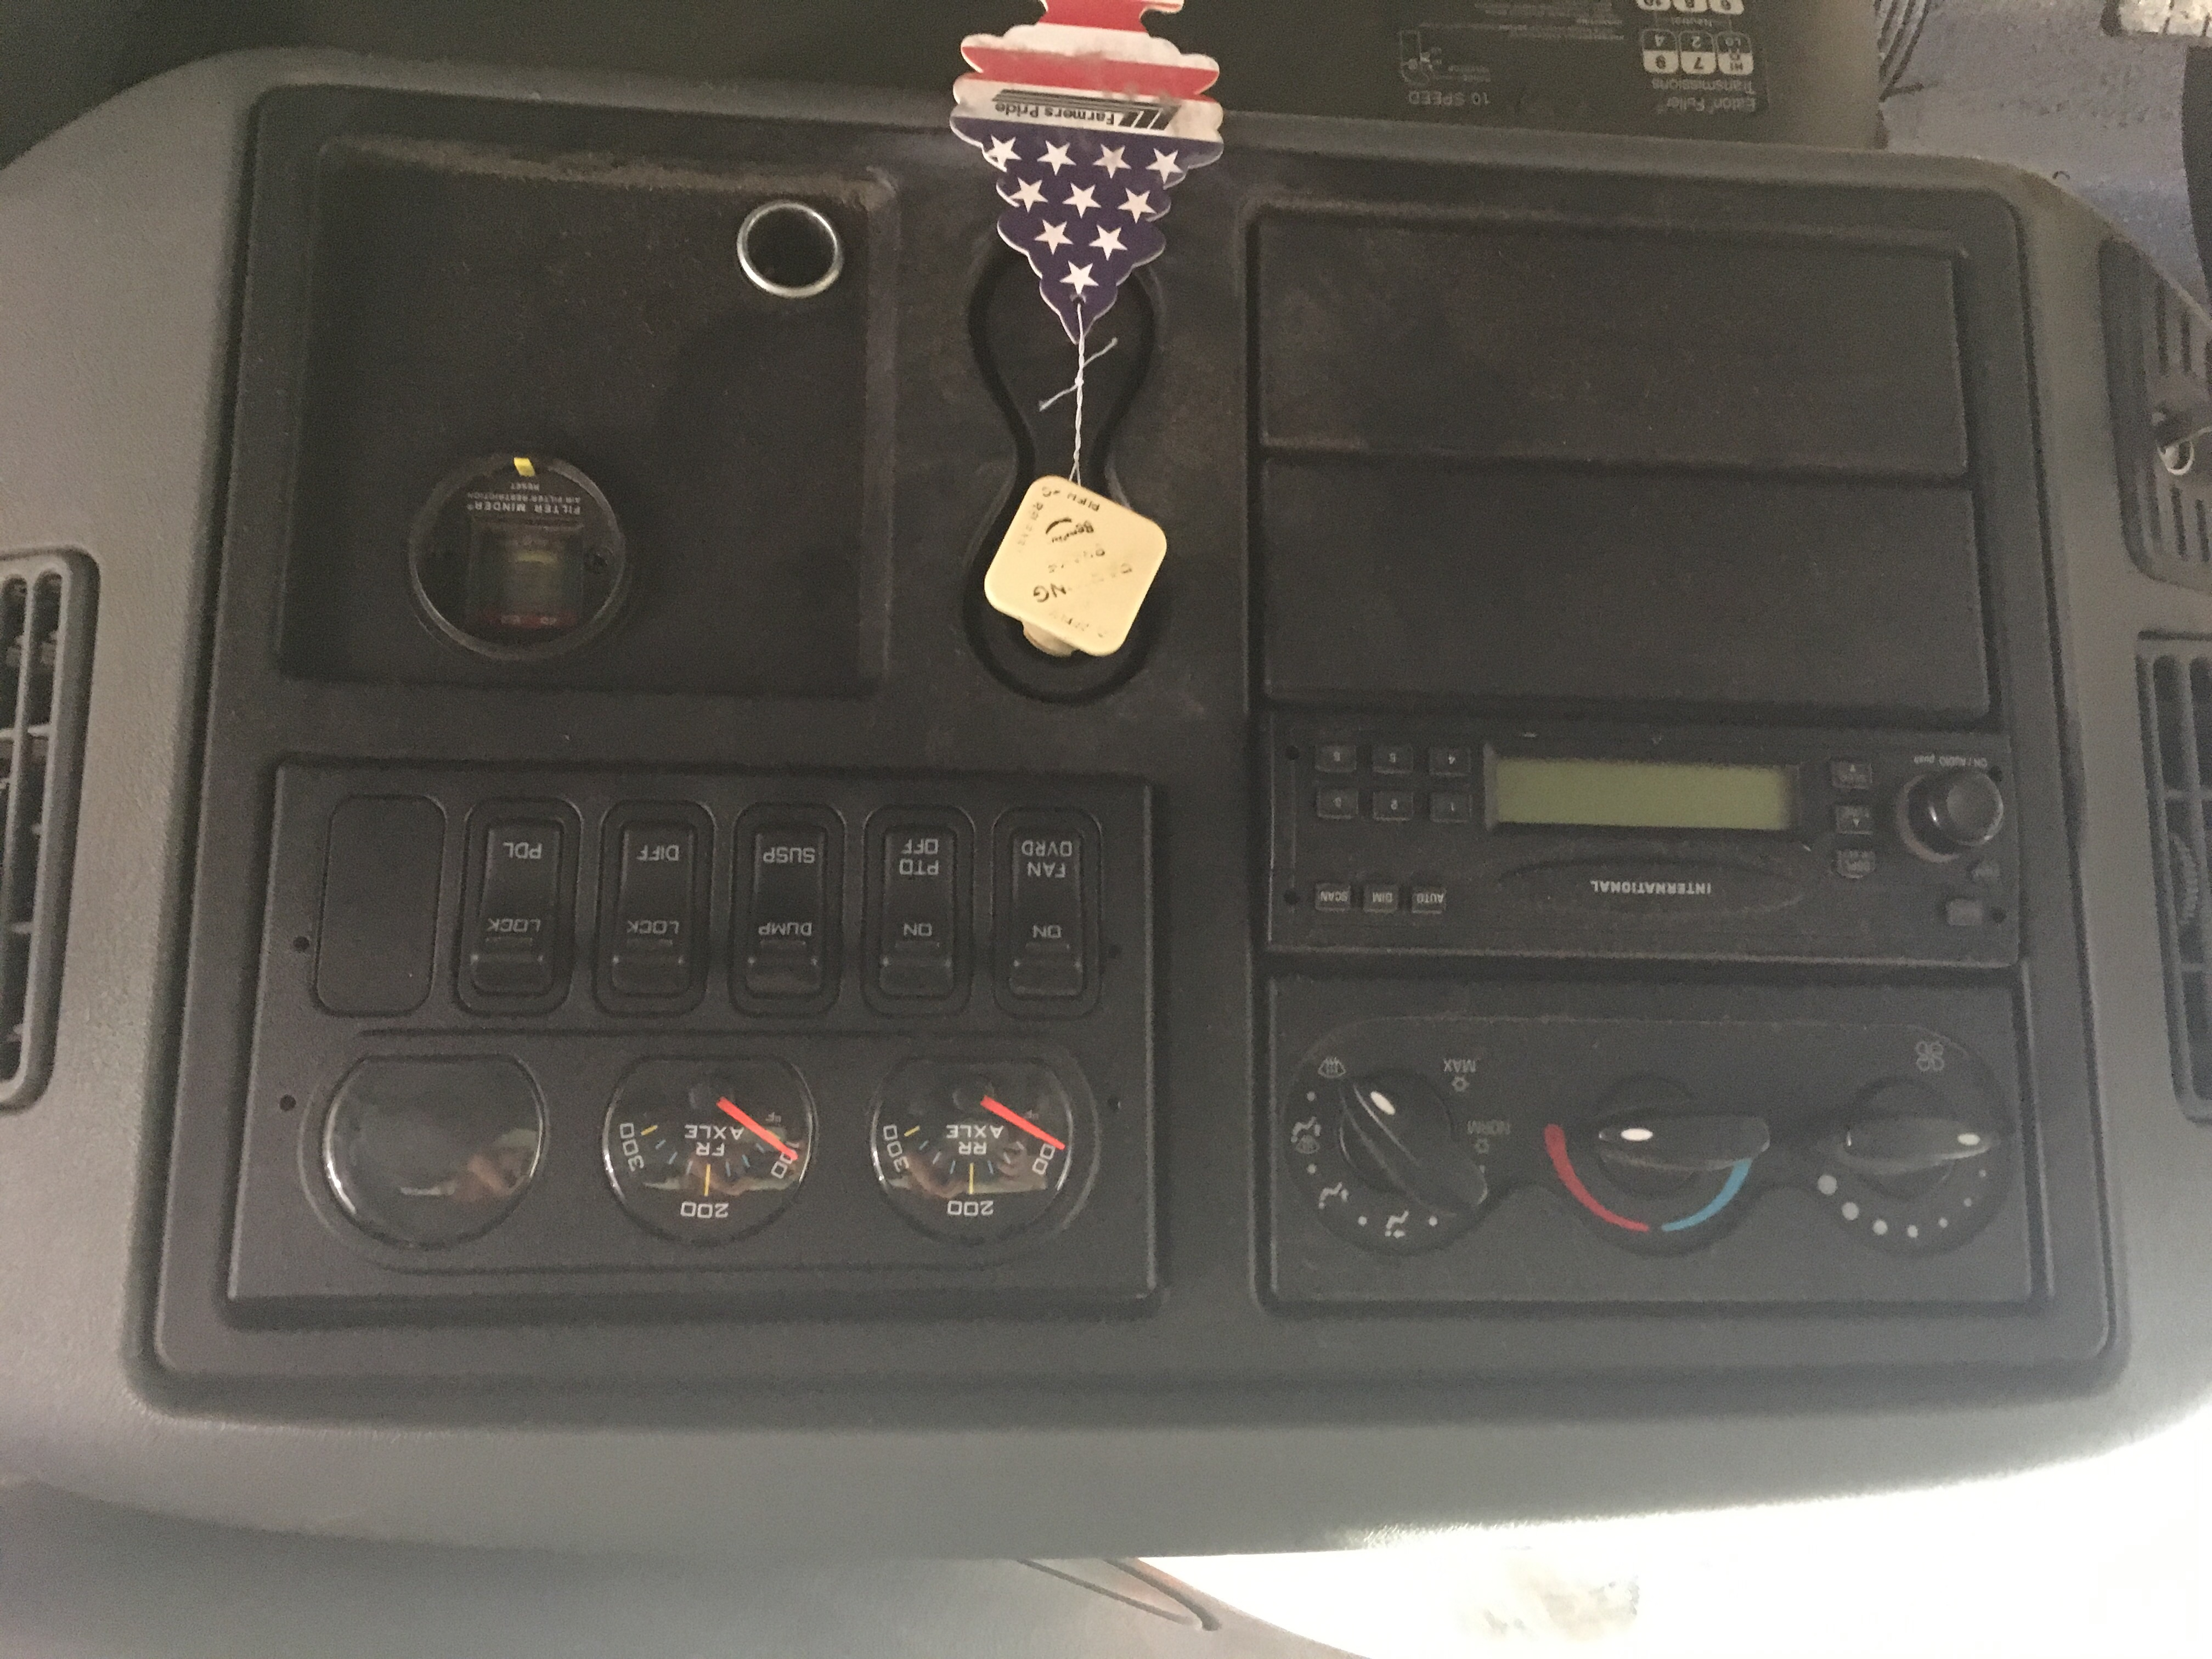 I Have A 2005 International 7500 Having Problems With My